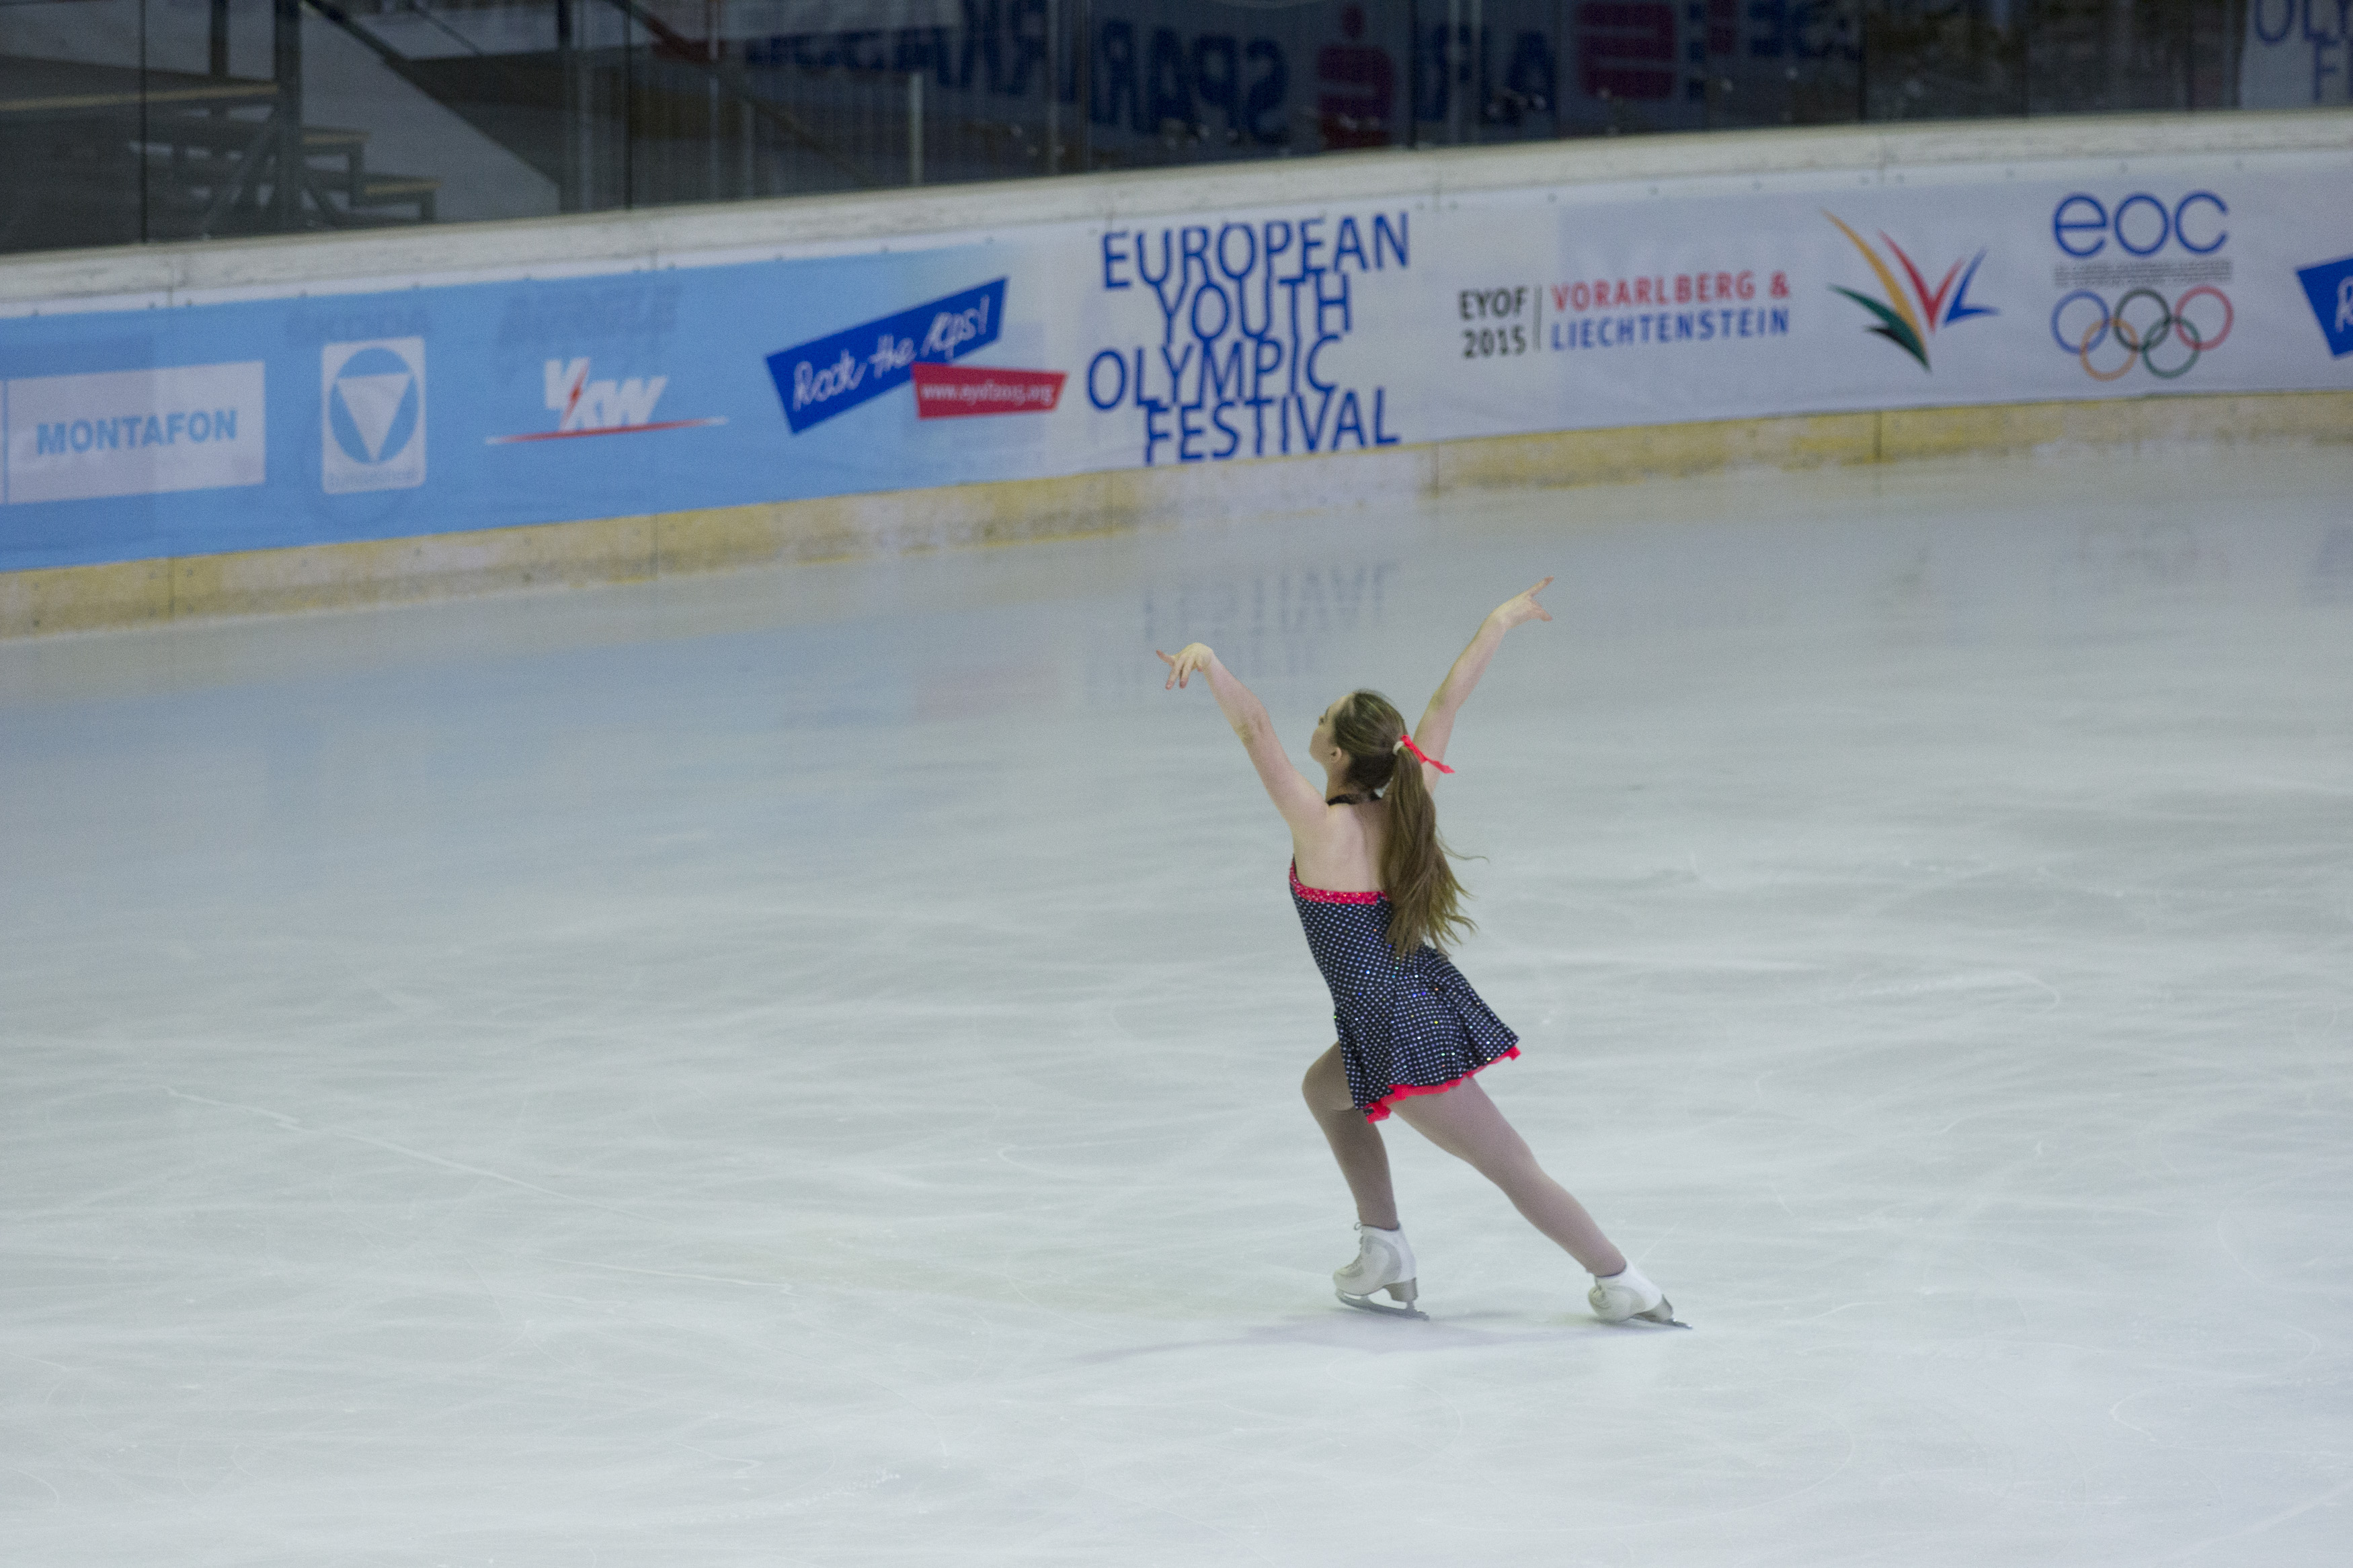 EYOF_20150126_DB_FigureSkating_GirlsShort_066.jpg